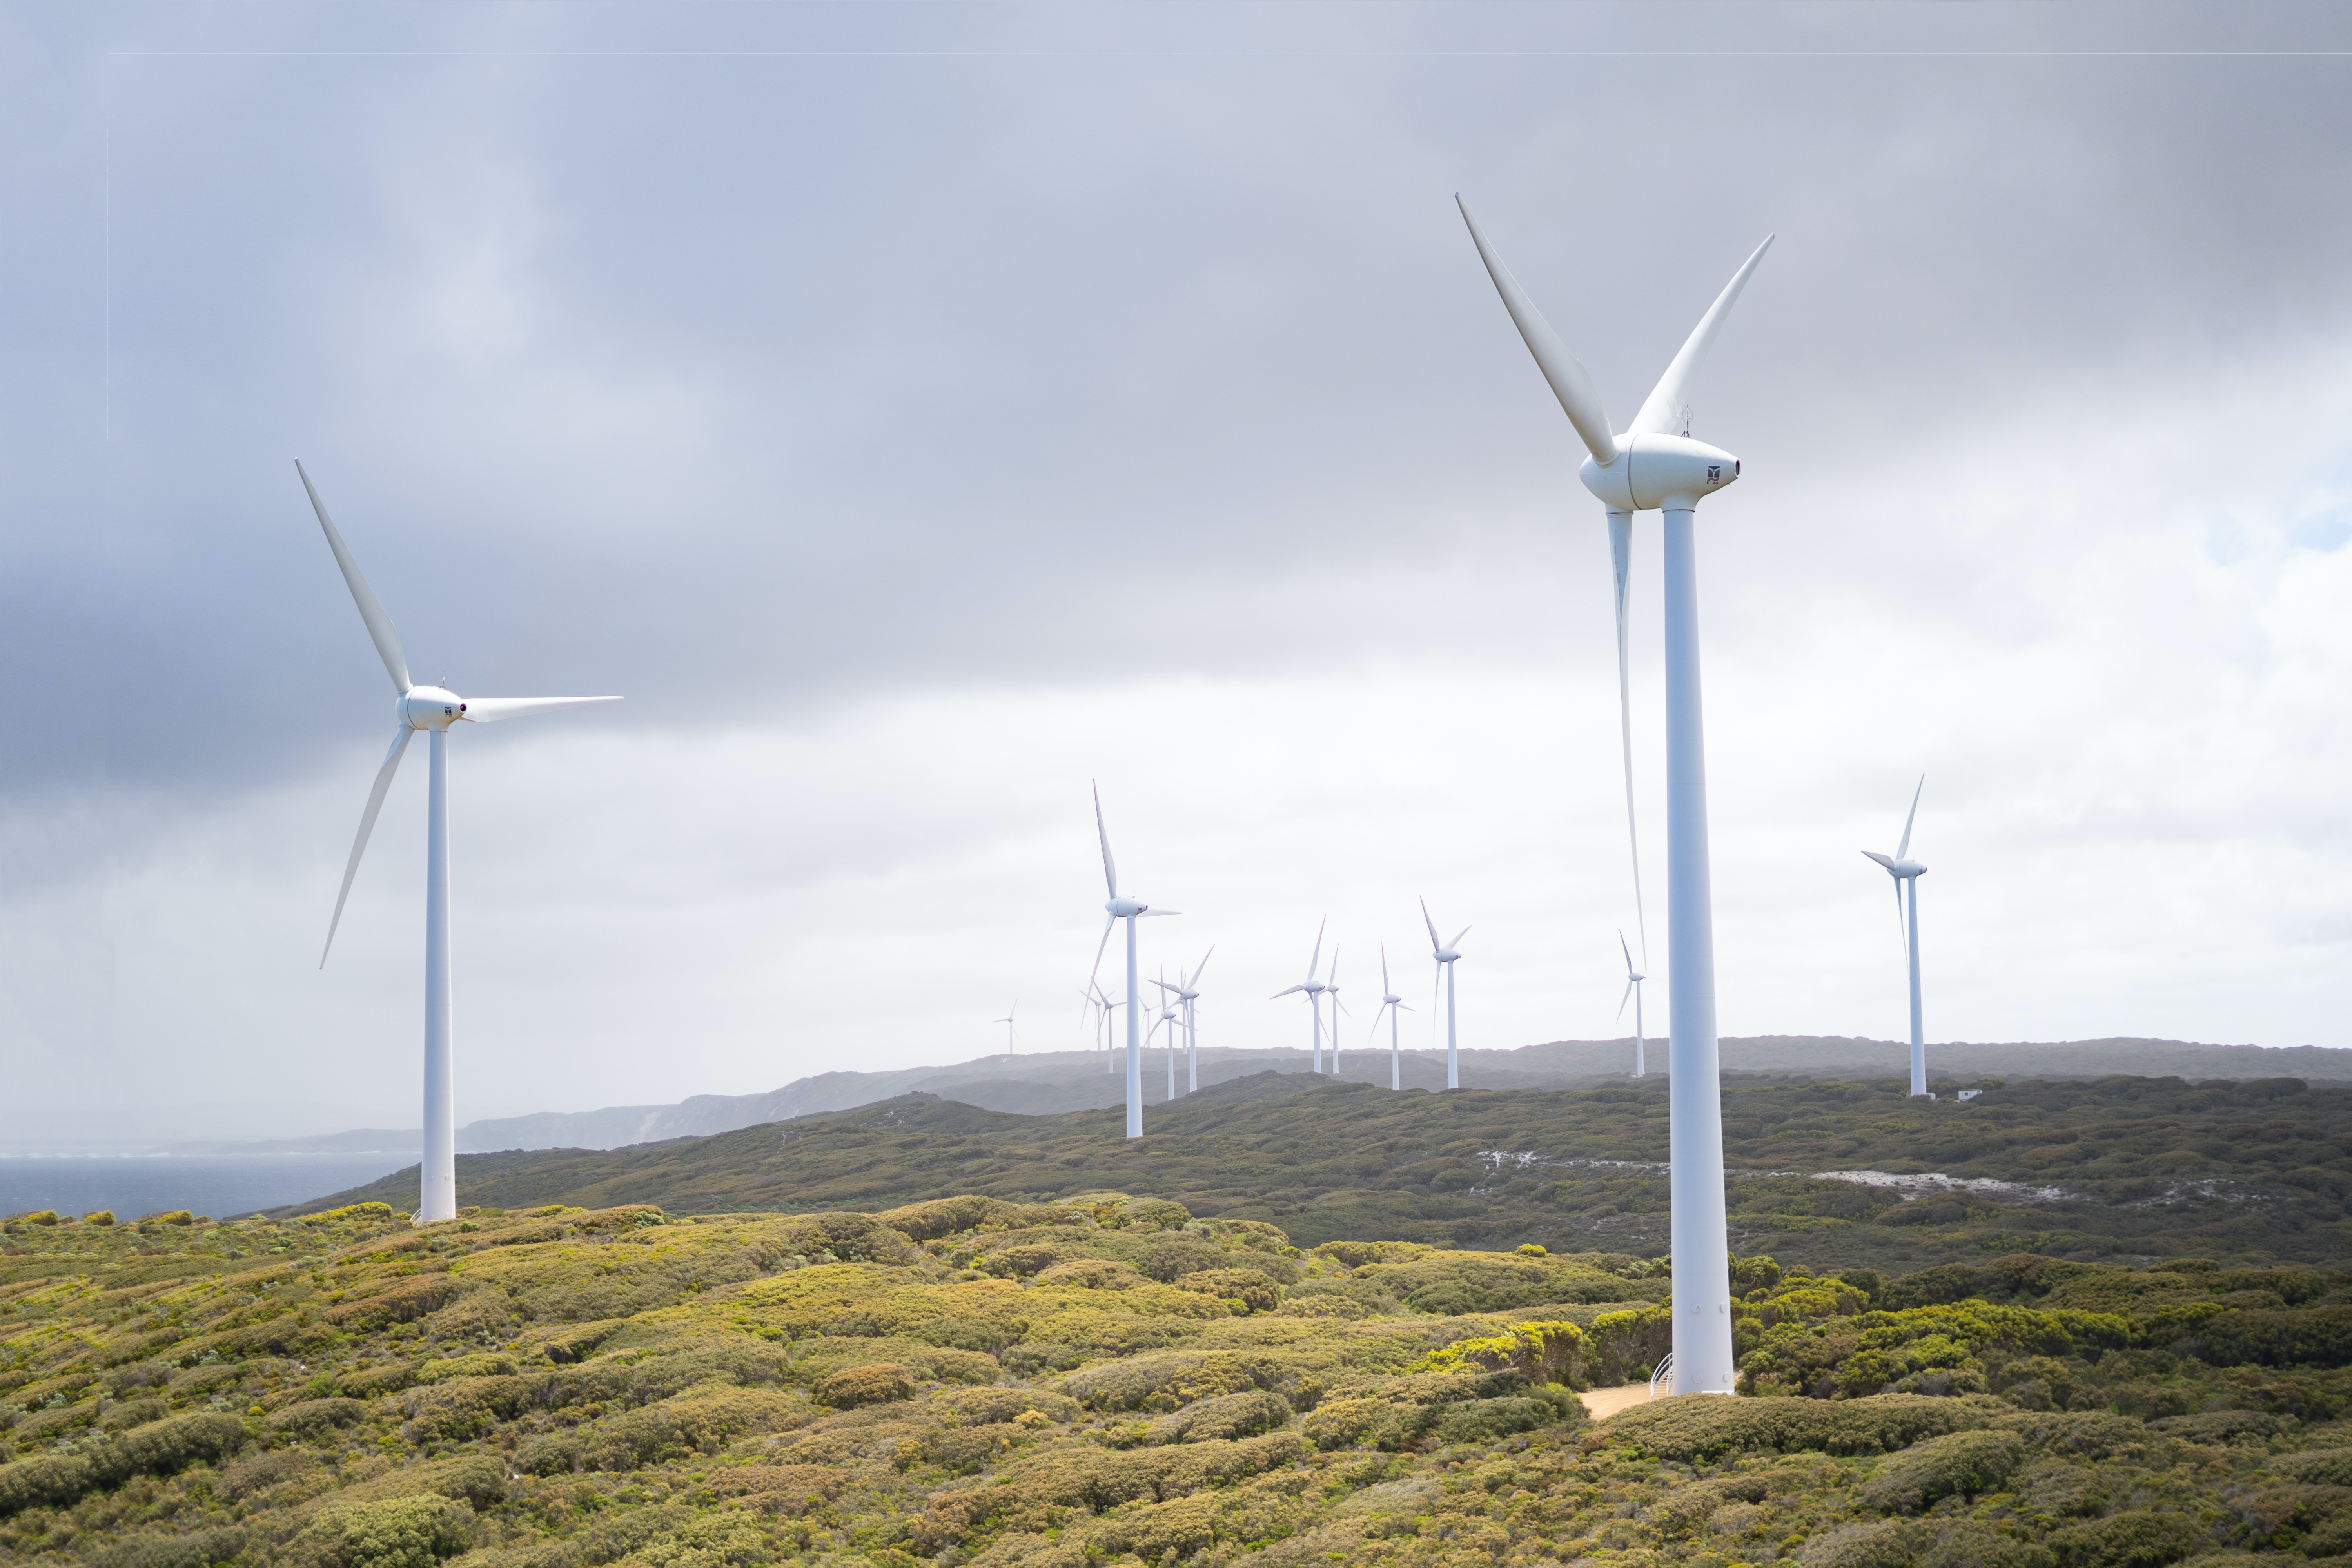 Twin peaks: South Australia reaches 100% solar, and then 100% wind power in same week